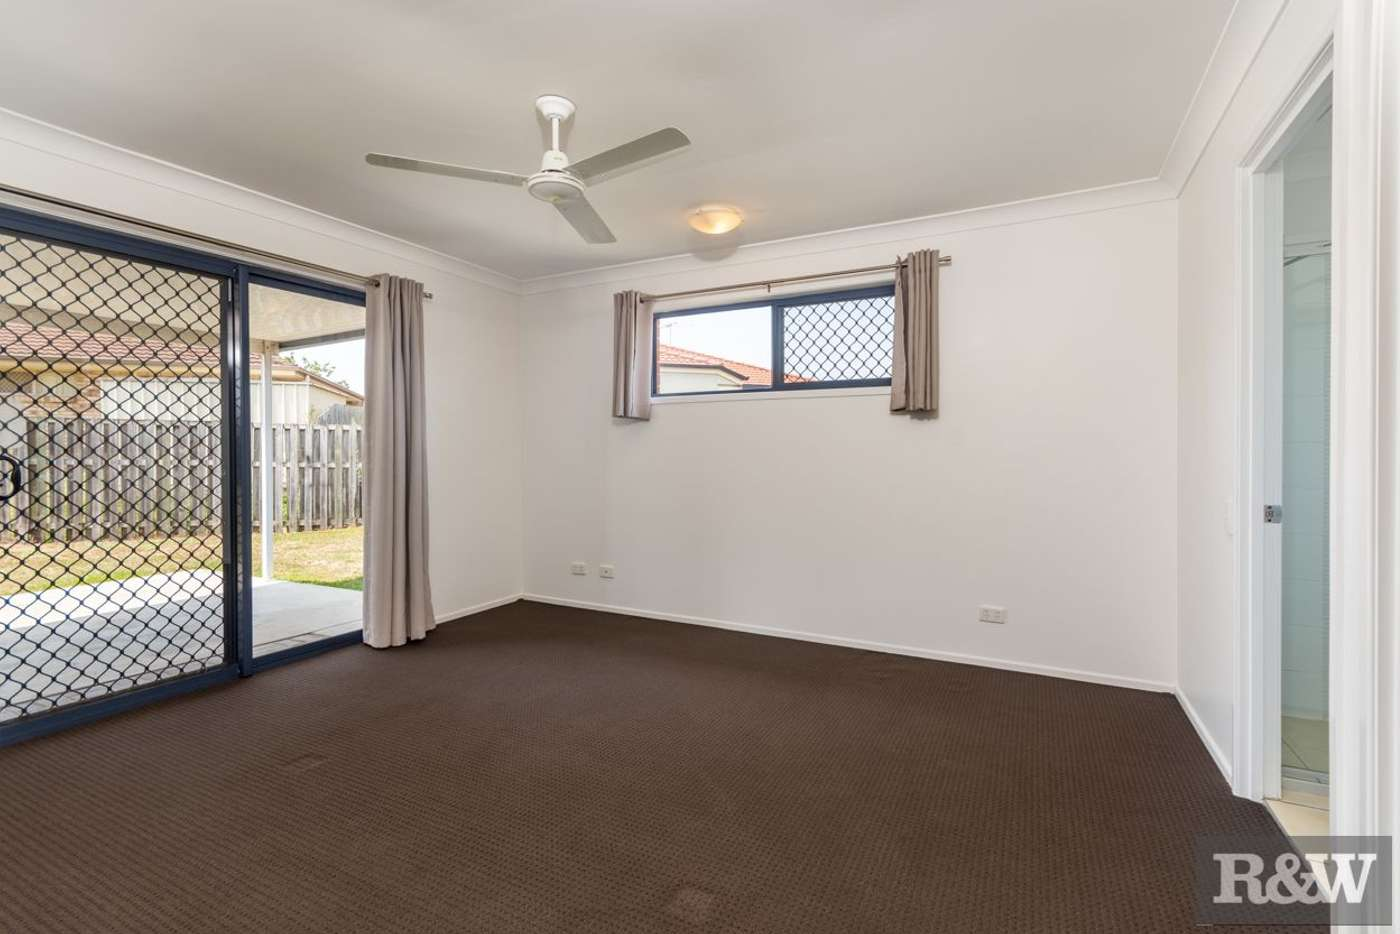 Sixth view of Homely house listing, 10 Marilyn Place, Morayfield QLD 4506